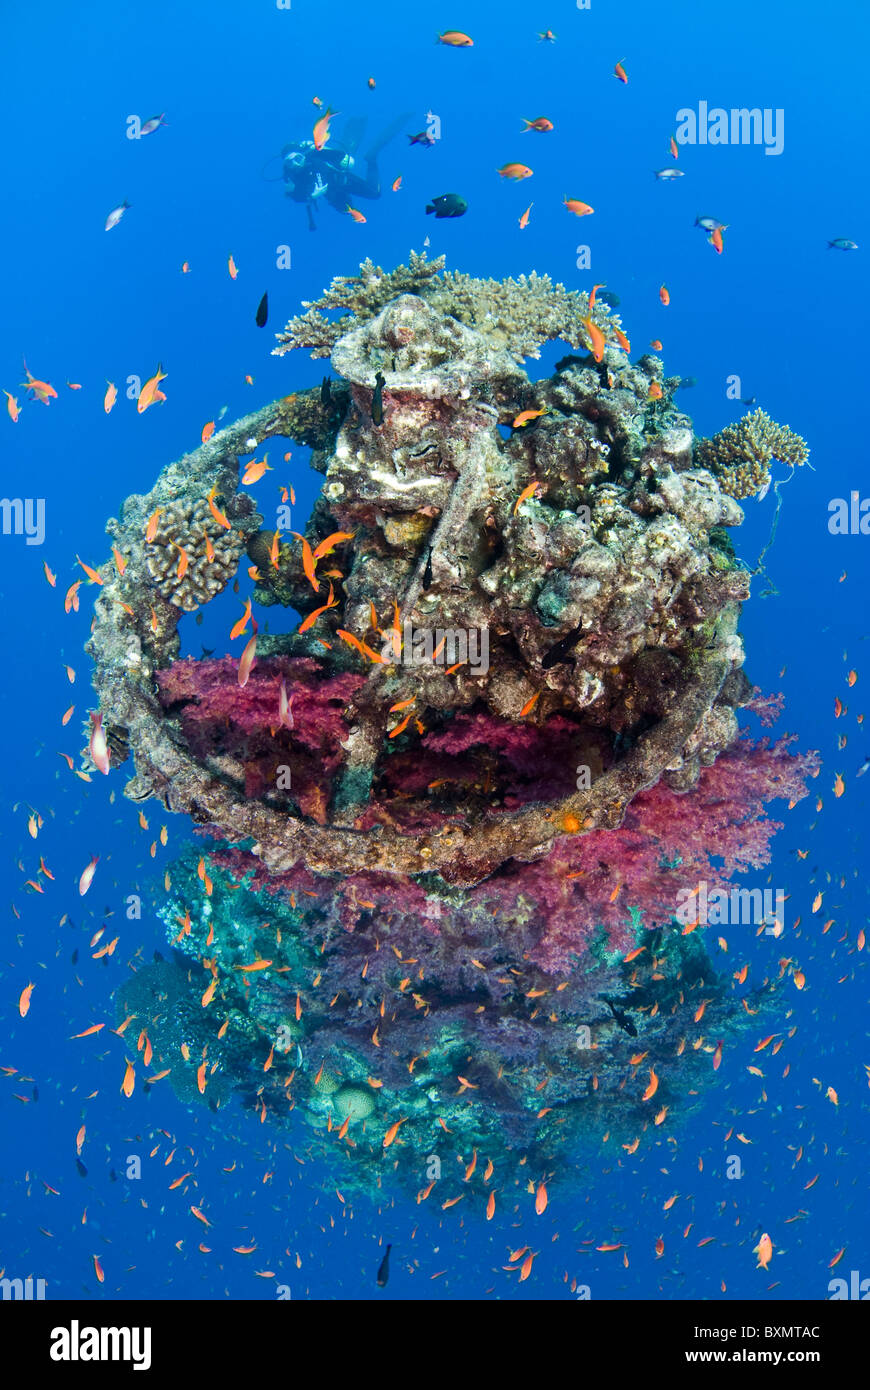 Coral growth on the buoy wreck structure. - Stock Image